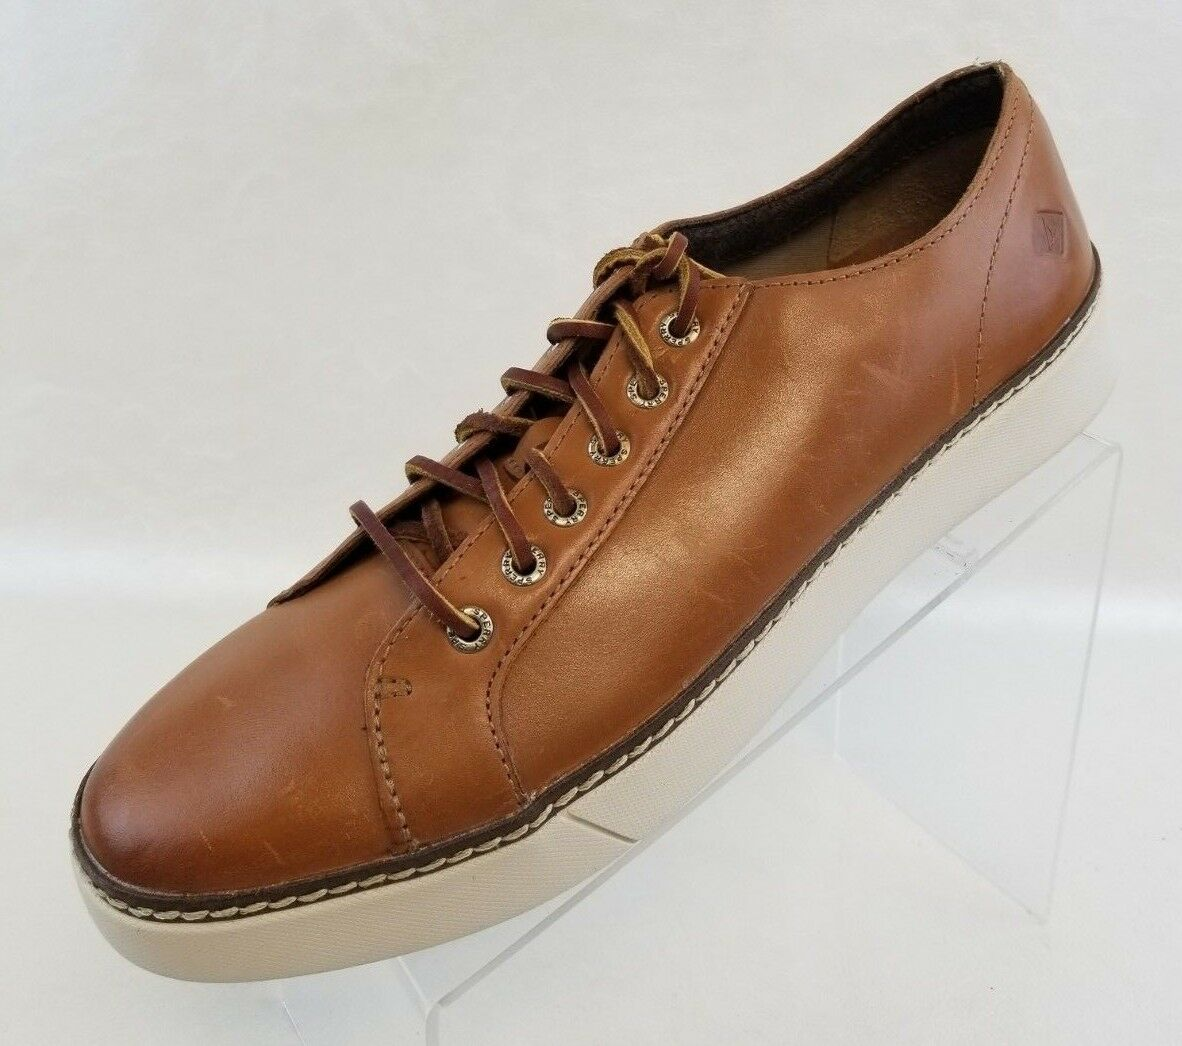 Sperry Top Sider Clipper LTT Mens Tan Leather Sneakers Lace Up shoes NWOB